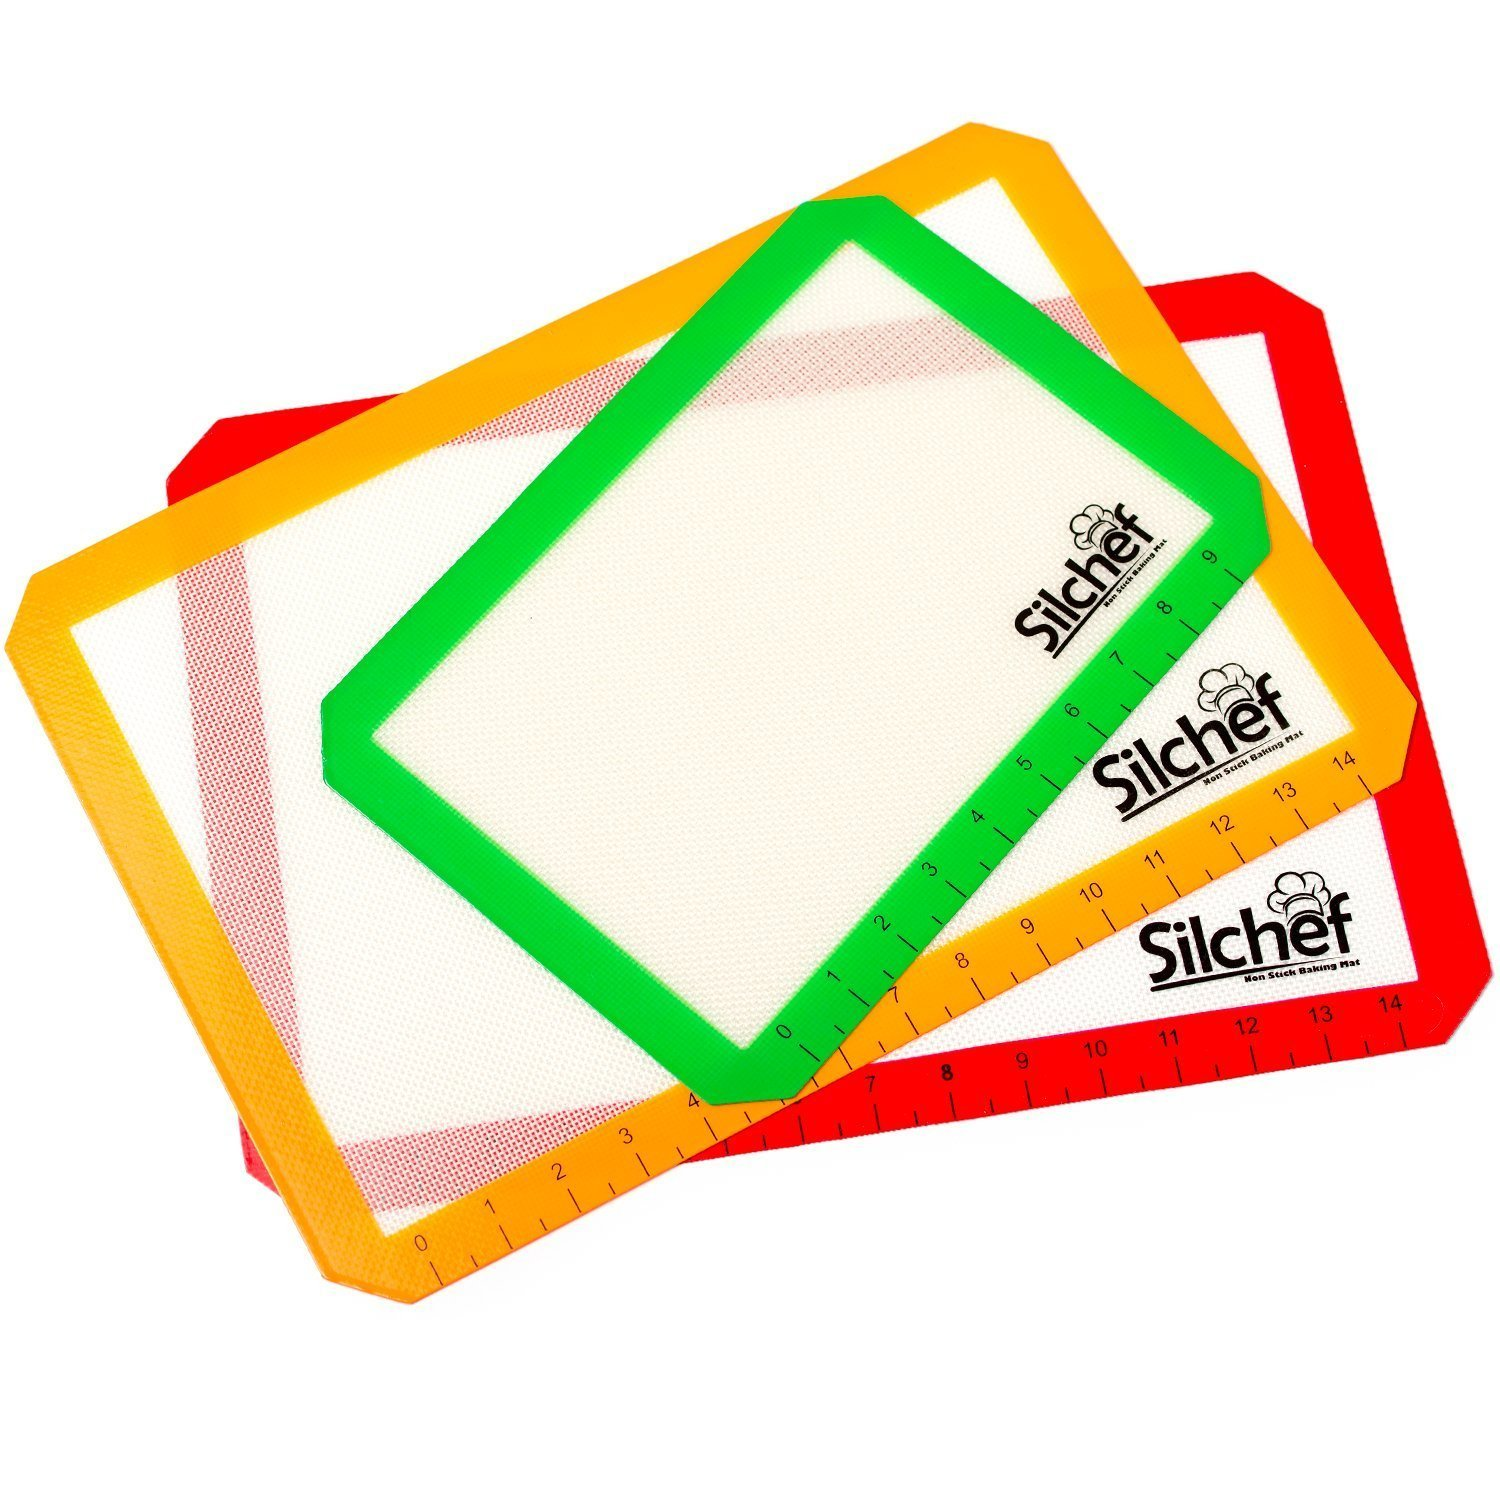 Silicone 3 Piece Non Stick Baking Mats with Measurements 2 Half Sheet Liners and 1 Quarter Sheet Mat